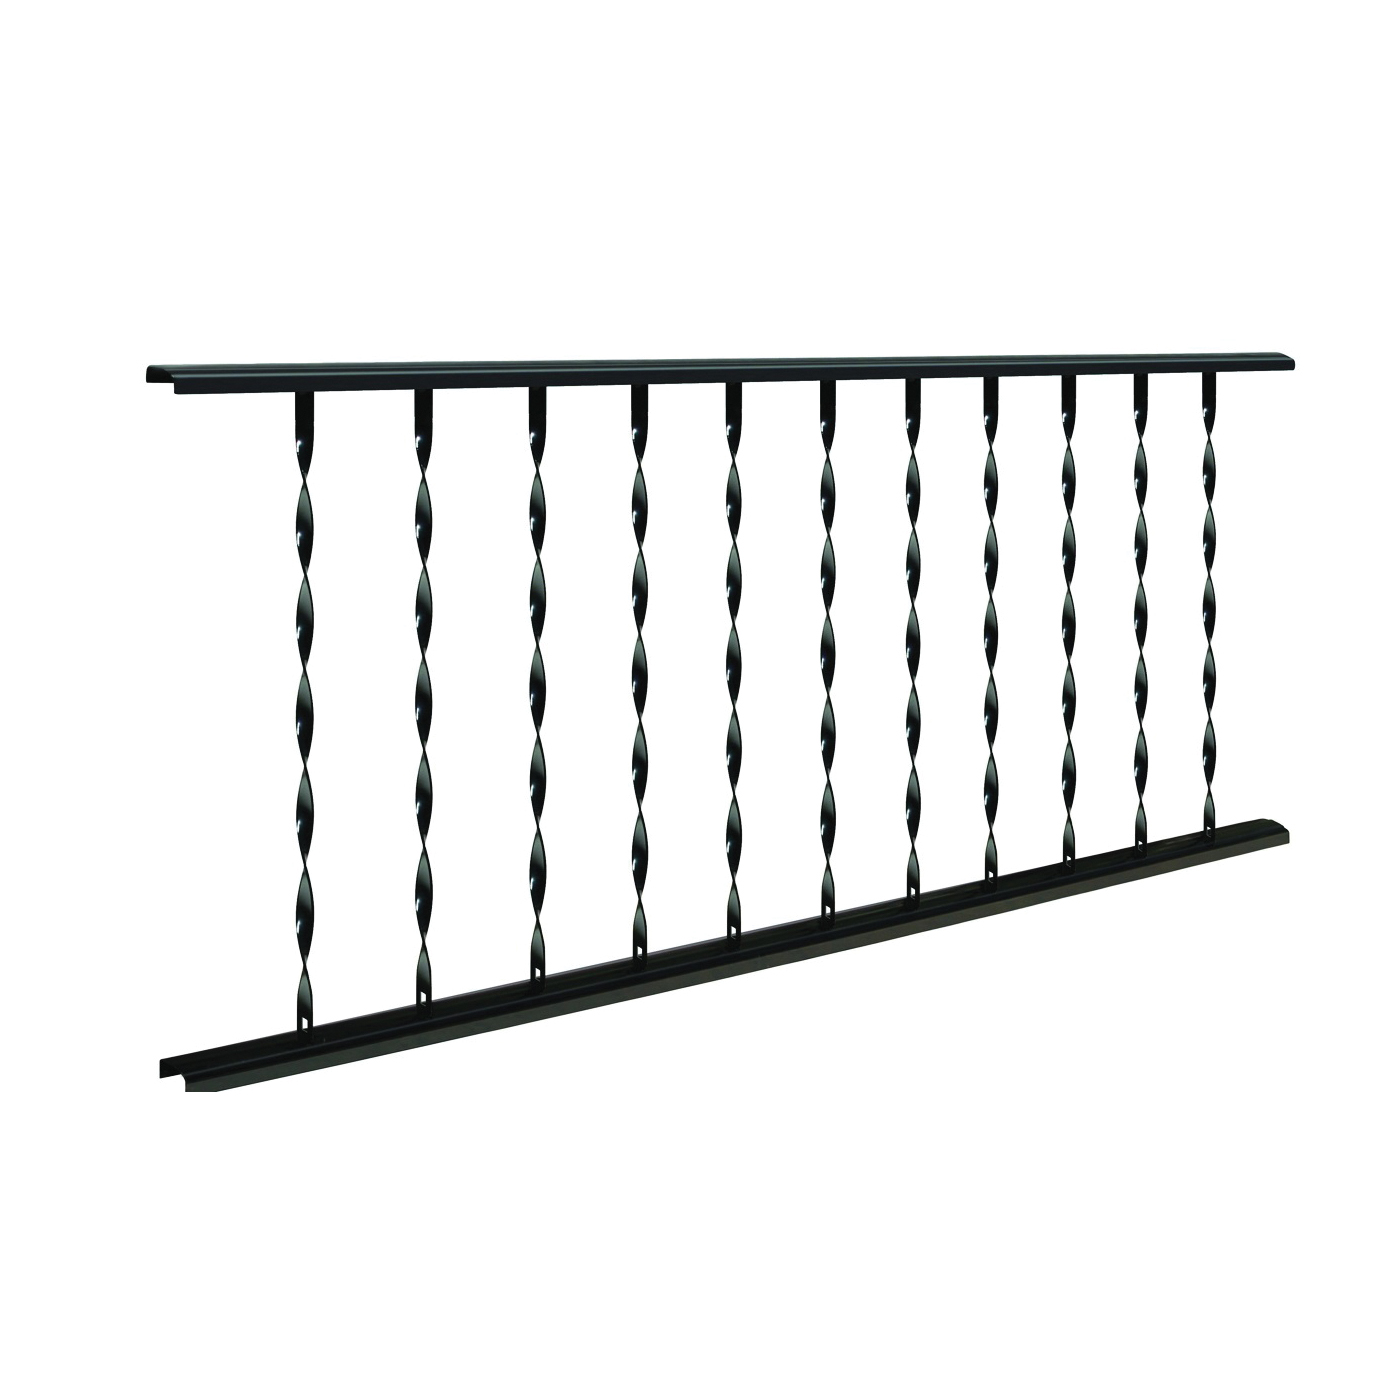 Picture of Village Ironsmith Classic CR625 Ornamental Railing, 27-3/4 in OAH, Steel Rail